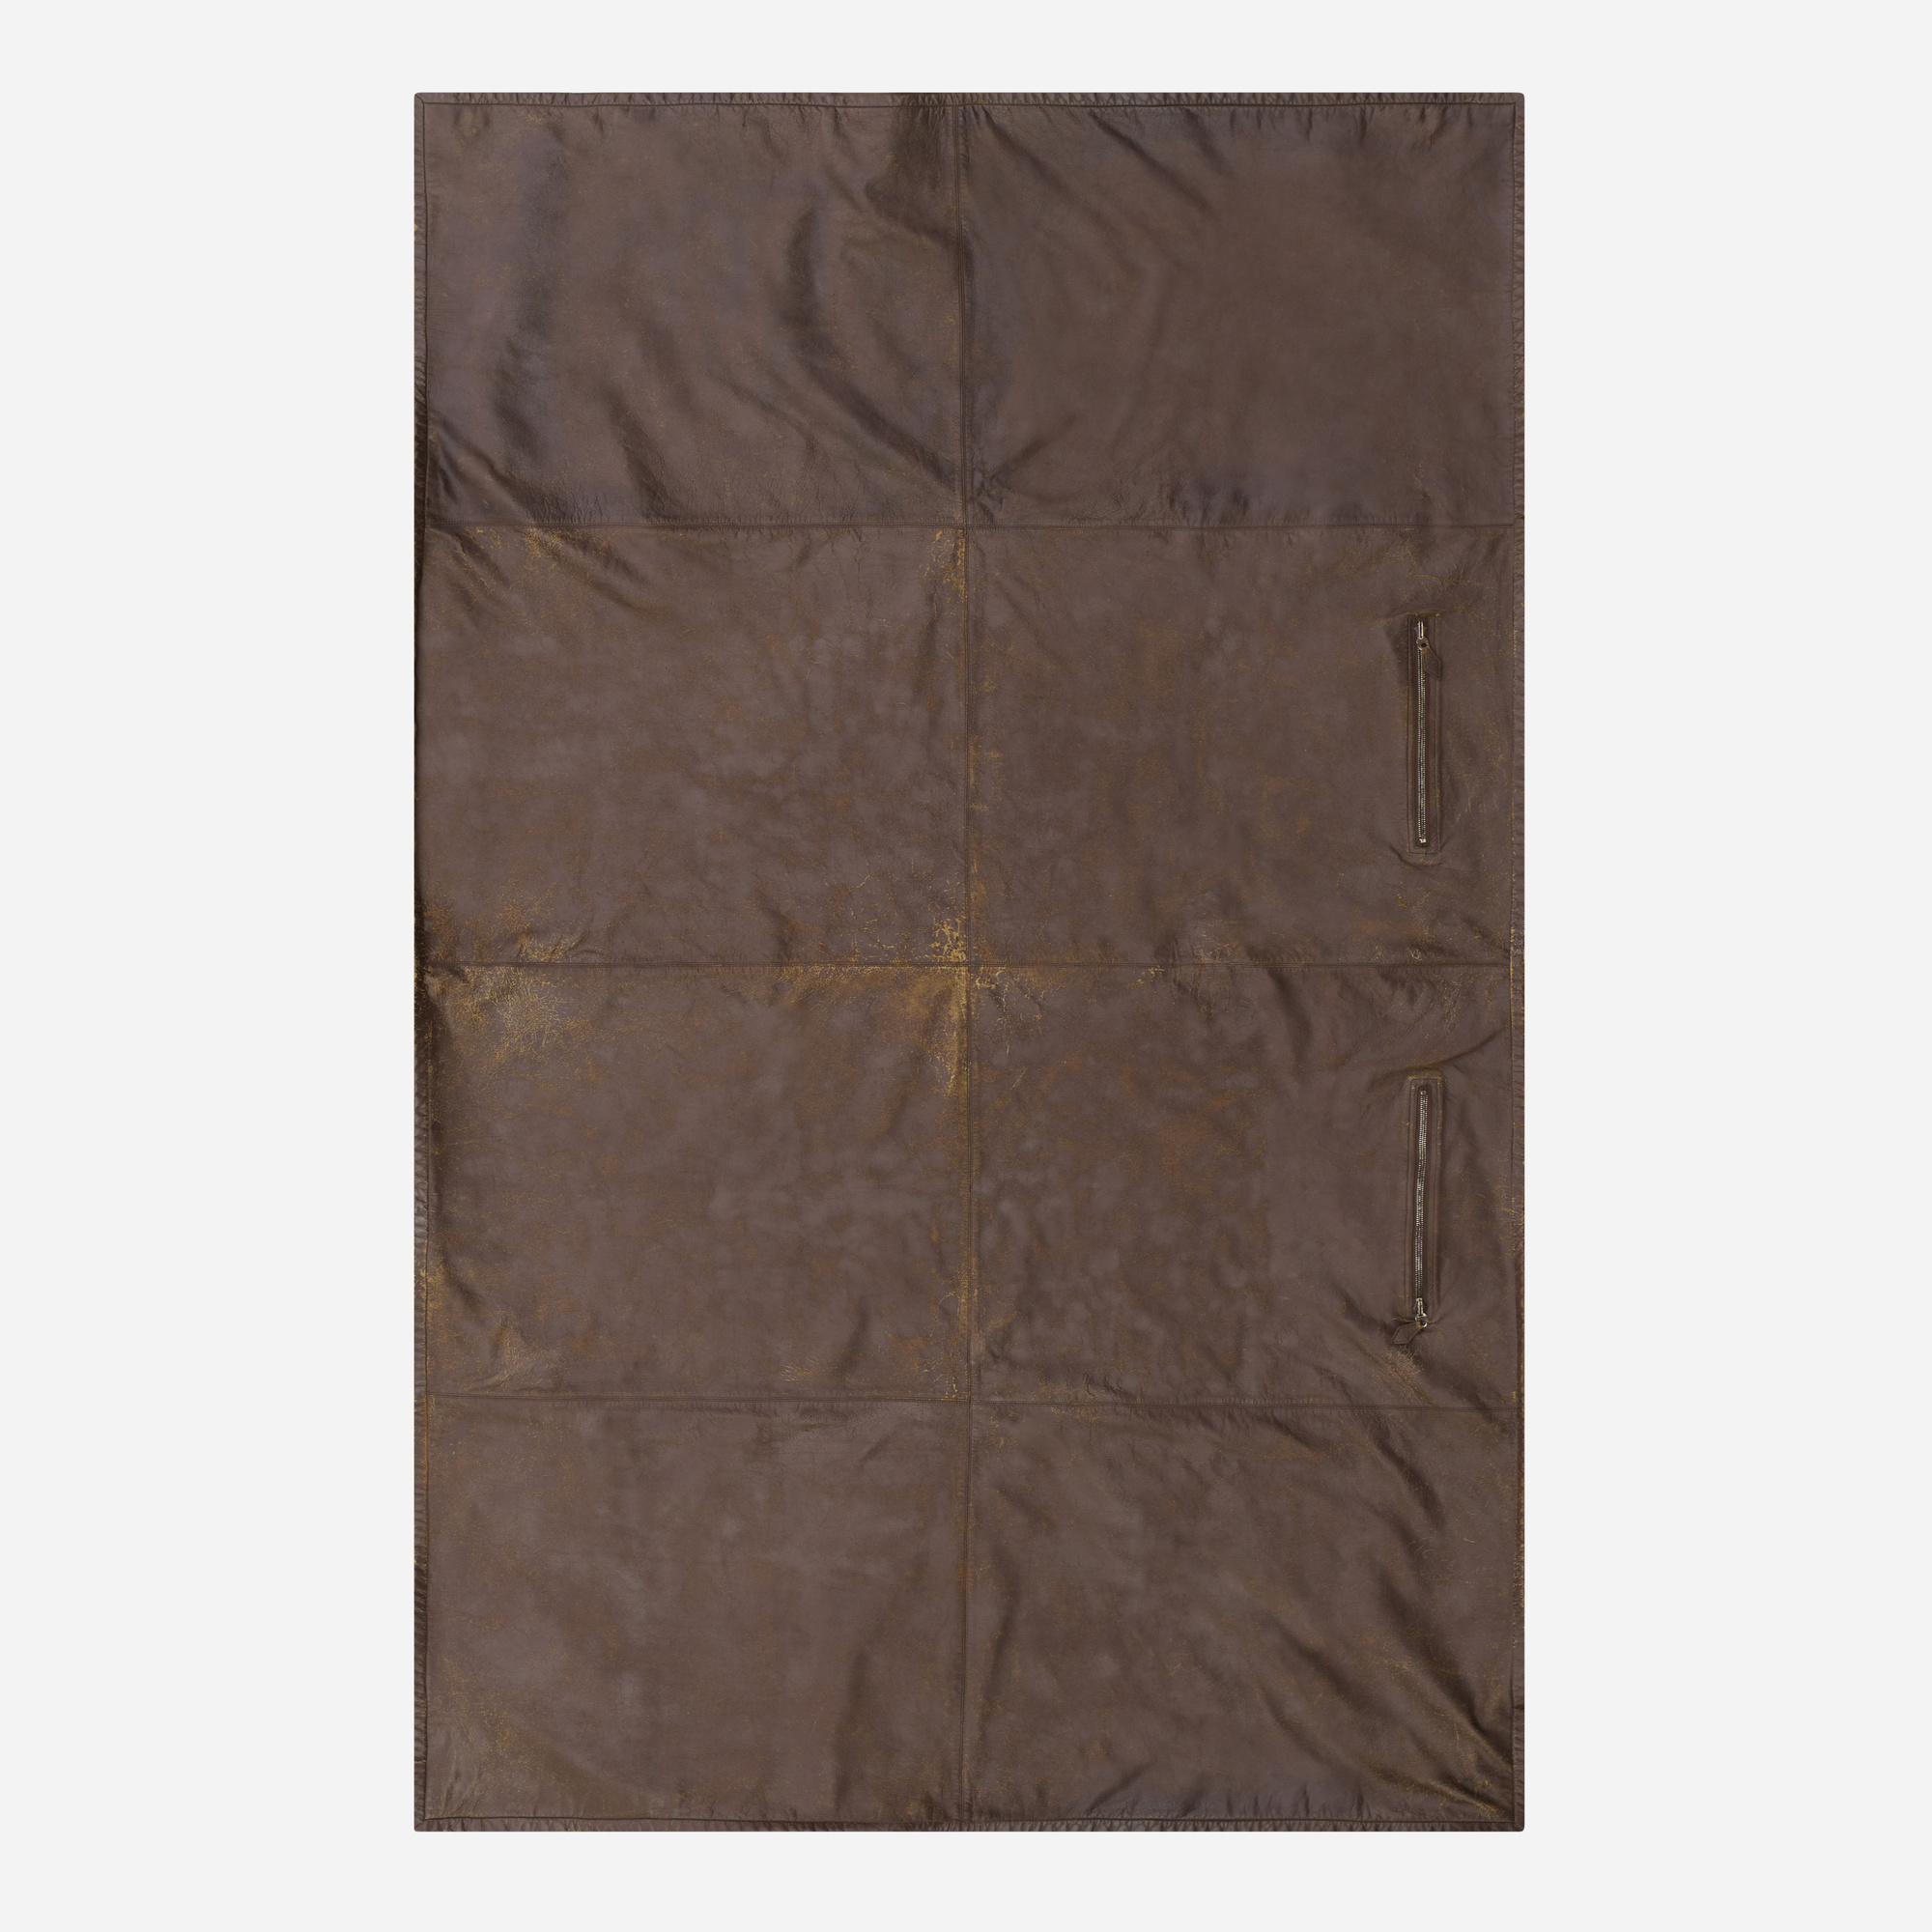 153: Early 20th Century / horse blanket (1 of 1)